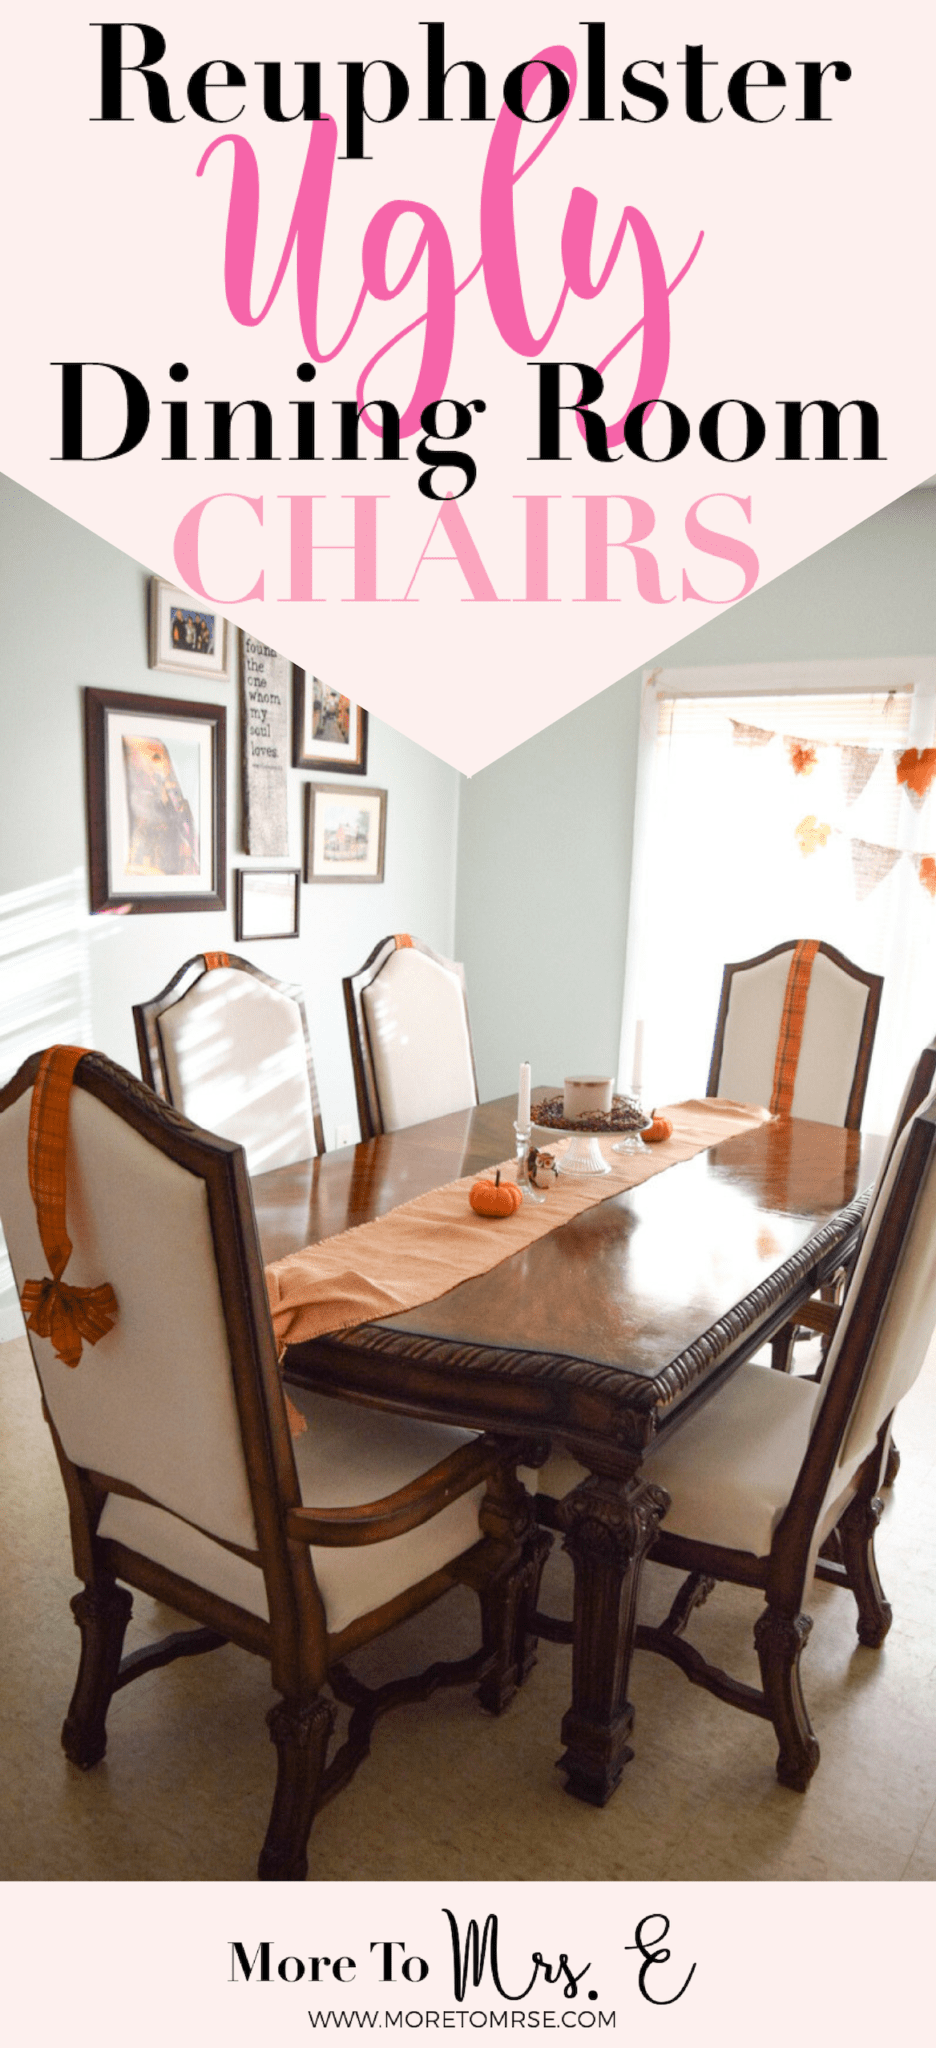 Diy Dining Chairs Recover The Seat Cushion Reupholster Dining Room Chairs Fabric Dining Chairs Dining Chairs